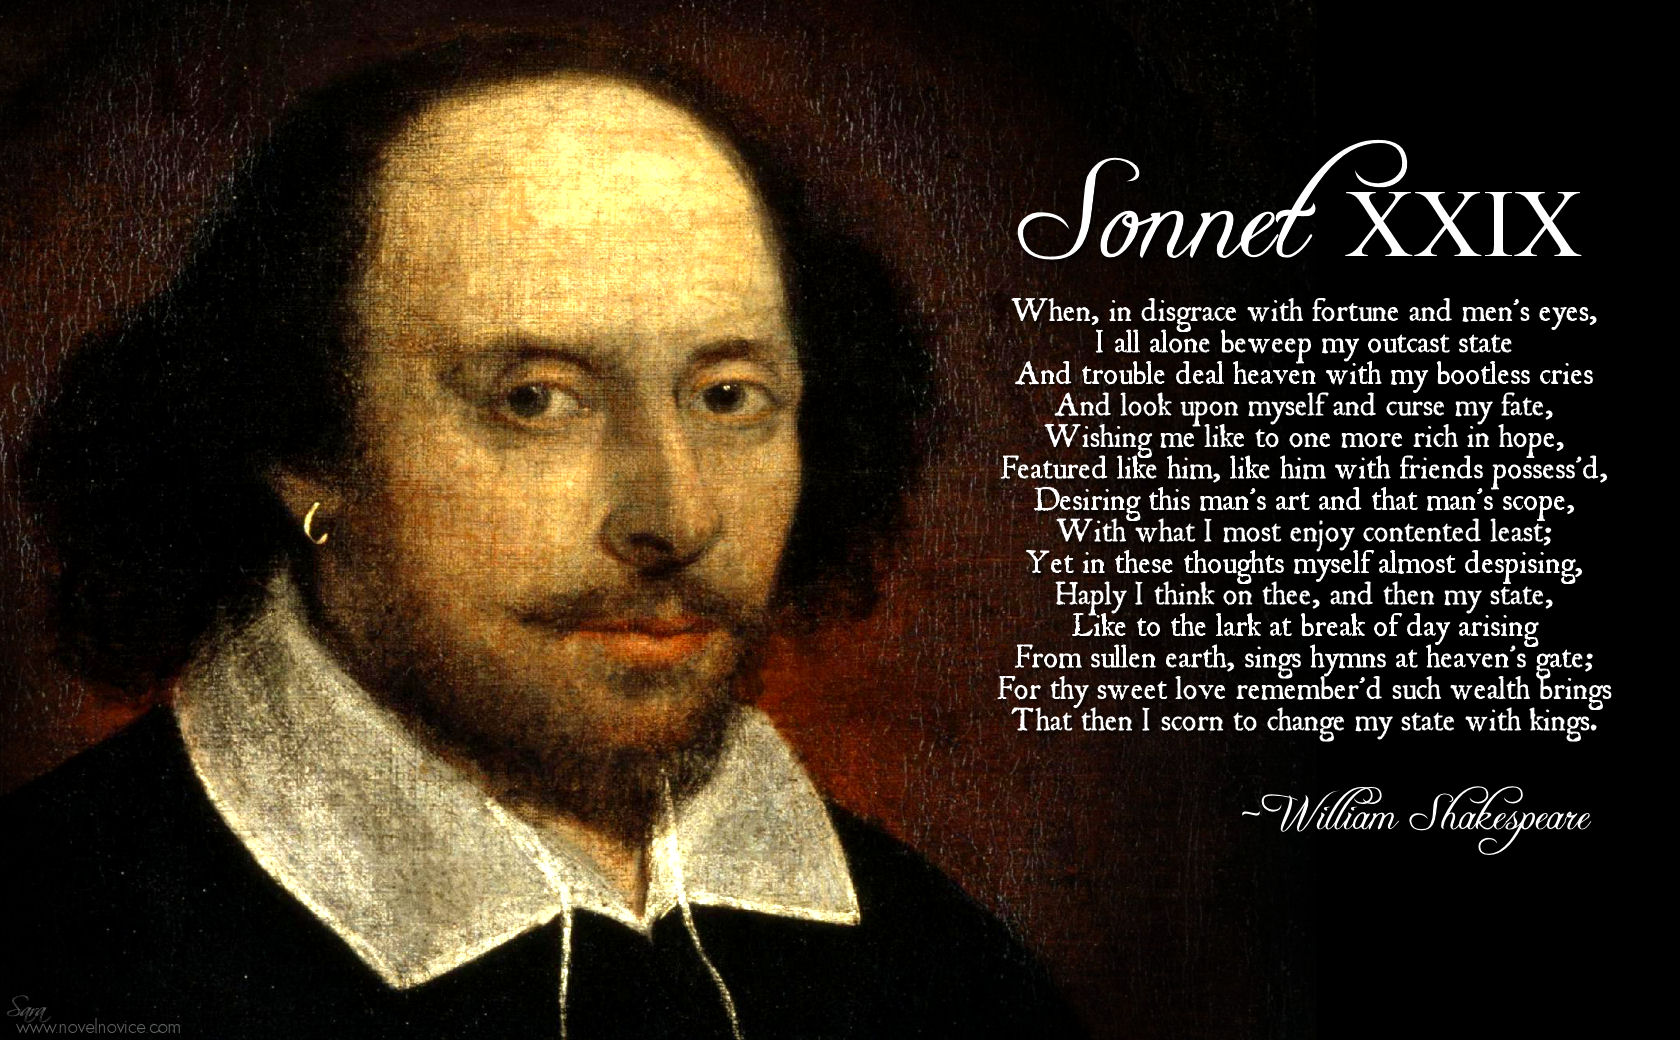 sonnet 35 shakespeare poetic devices Shakespeare's sonnet 35 analysis no more be grieved at that which thou hast done:  john donne's wit & myth of poetry modern poetry edgar allan poe poetry.